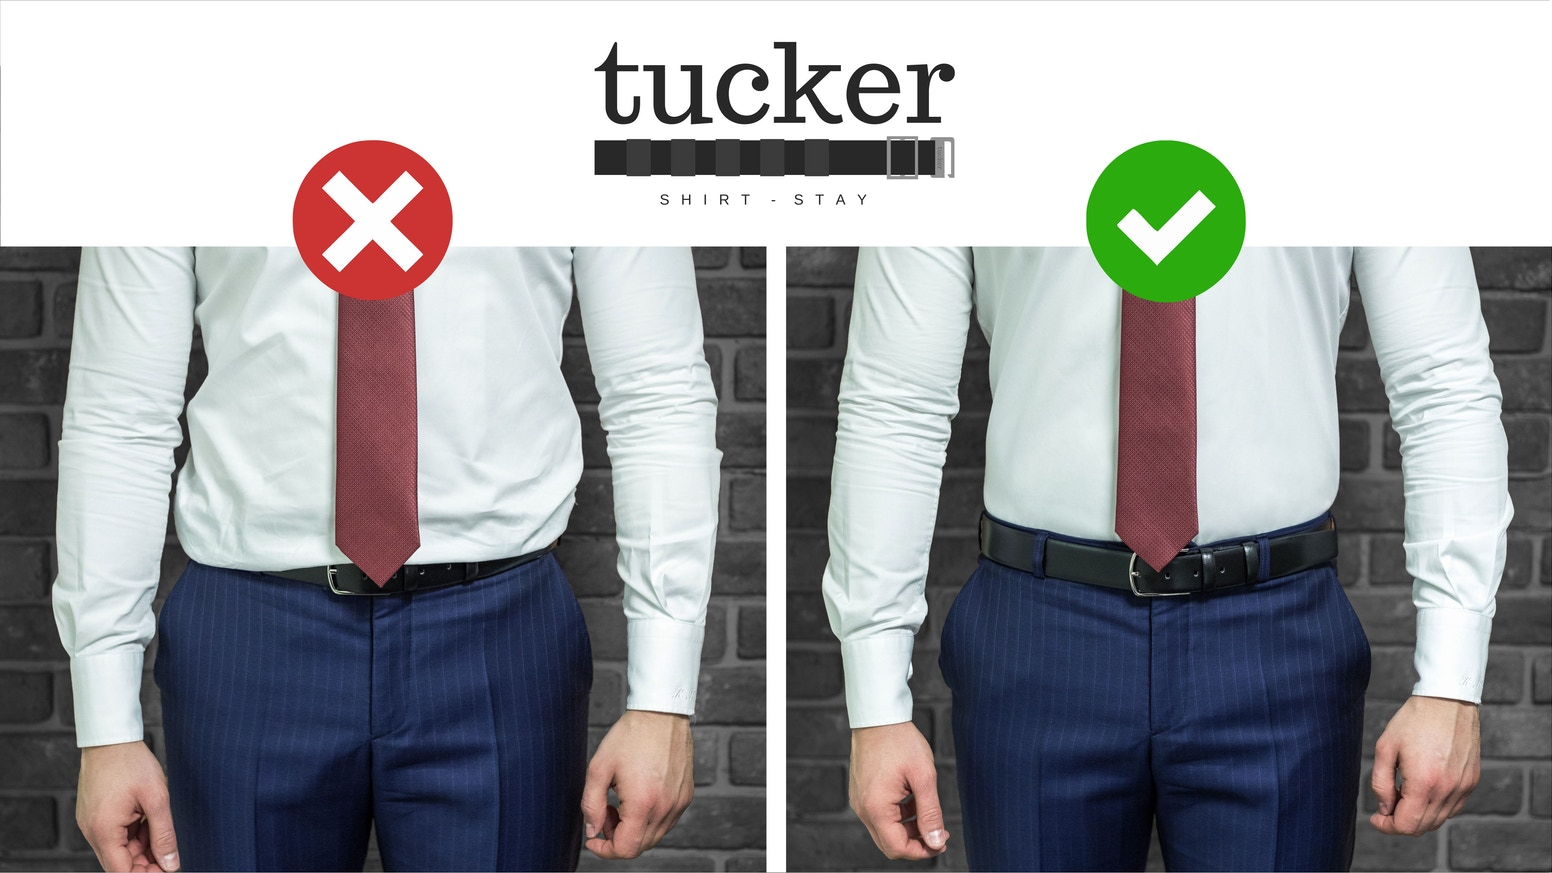 Conquering the world is tough, keeping your shirt looking crisp all day shouldn't be.  Tucker handles the shirt, you handle the rest.